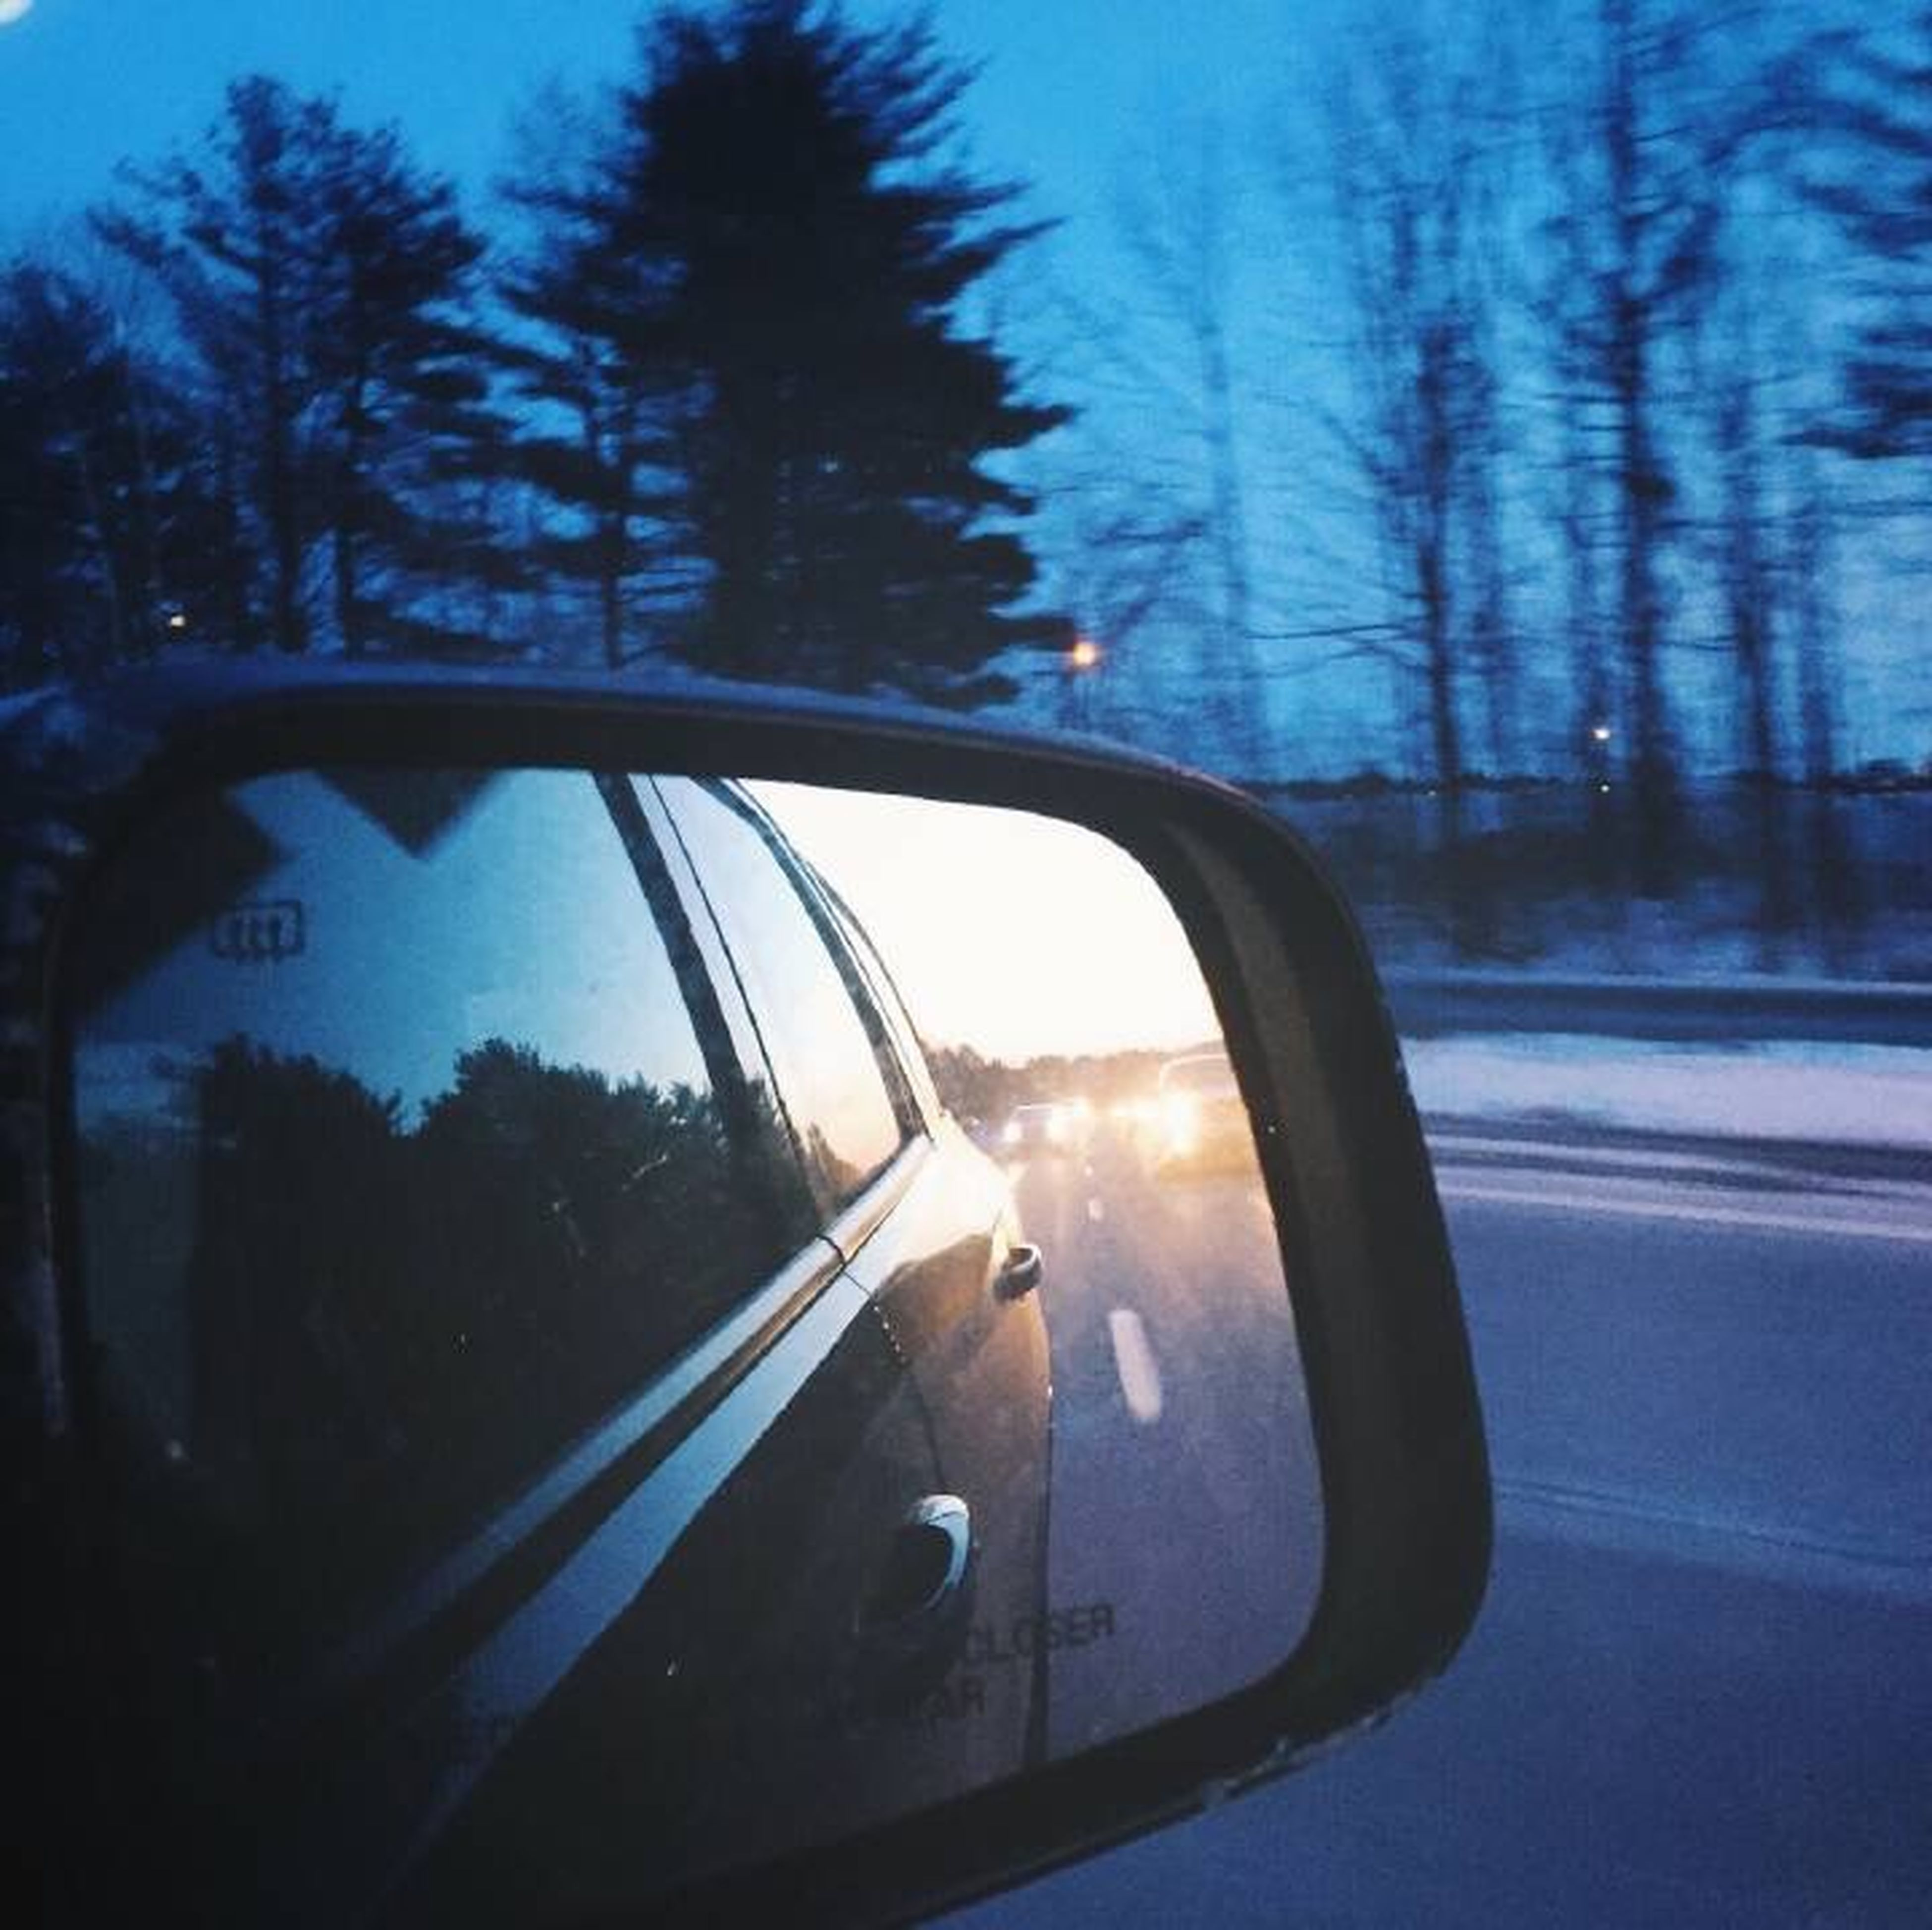 transportation, land vehicle, mode of transport, car, vehicle interior, windshield, car interior, side-view mirror, road, tree, glass - material, on the move, transparent, travel, reflection, street, sky, road trip, part of, silhouette